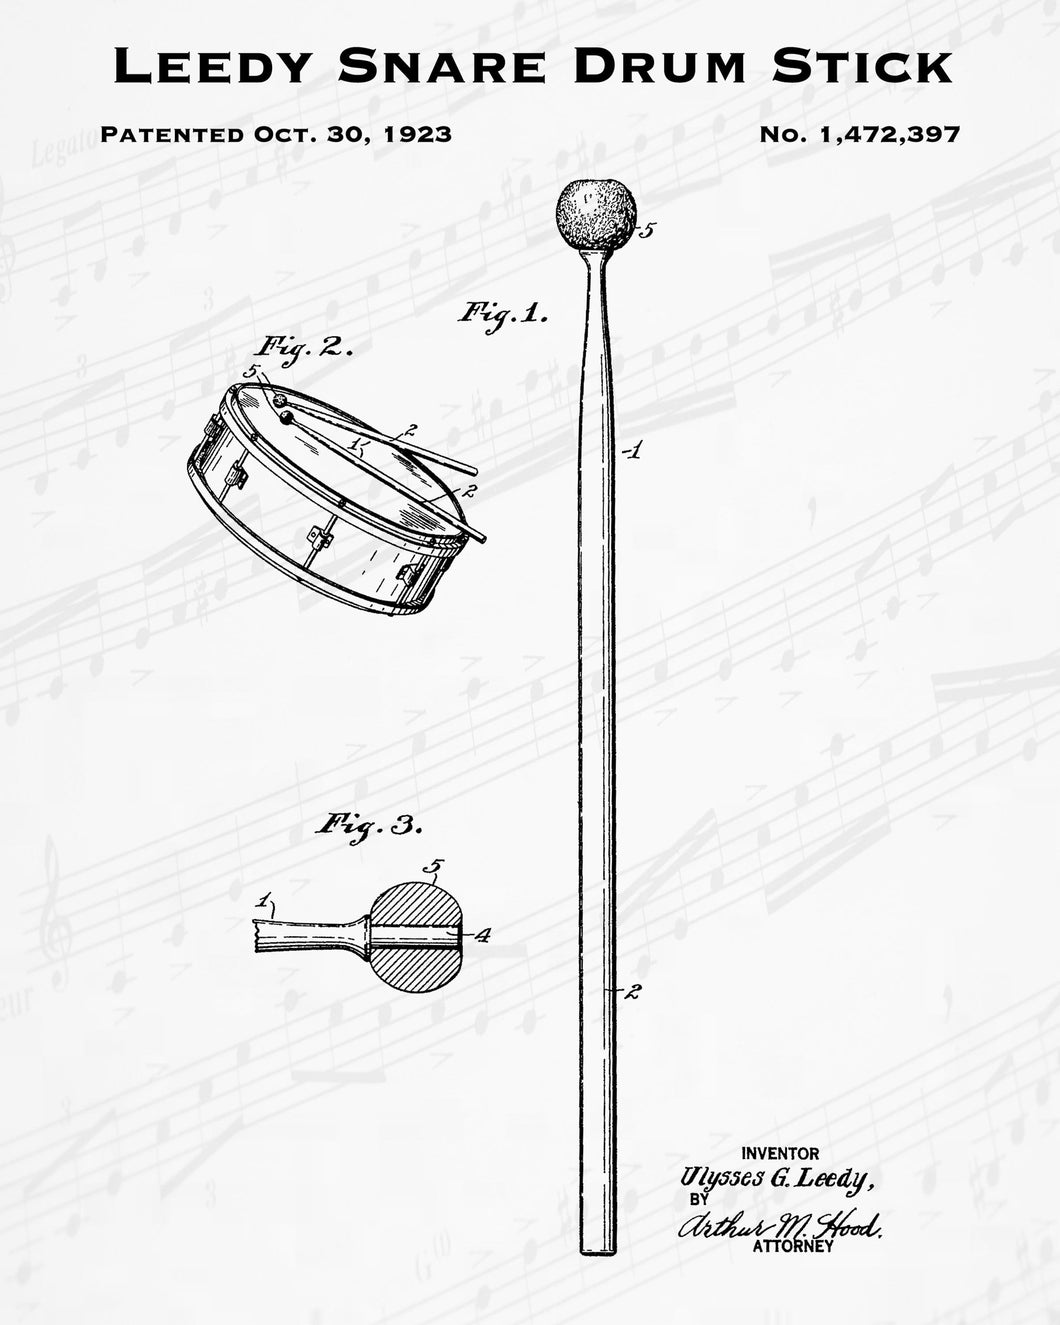 1923 Leedy Snare Drum Stick Patent - 8X10 Digital Download Patent